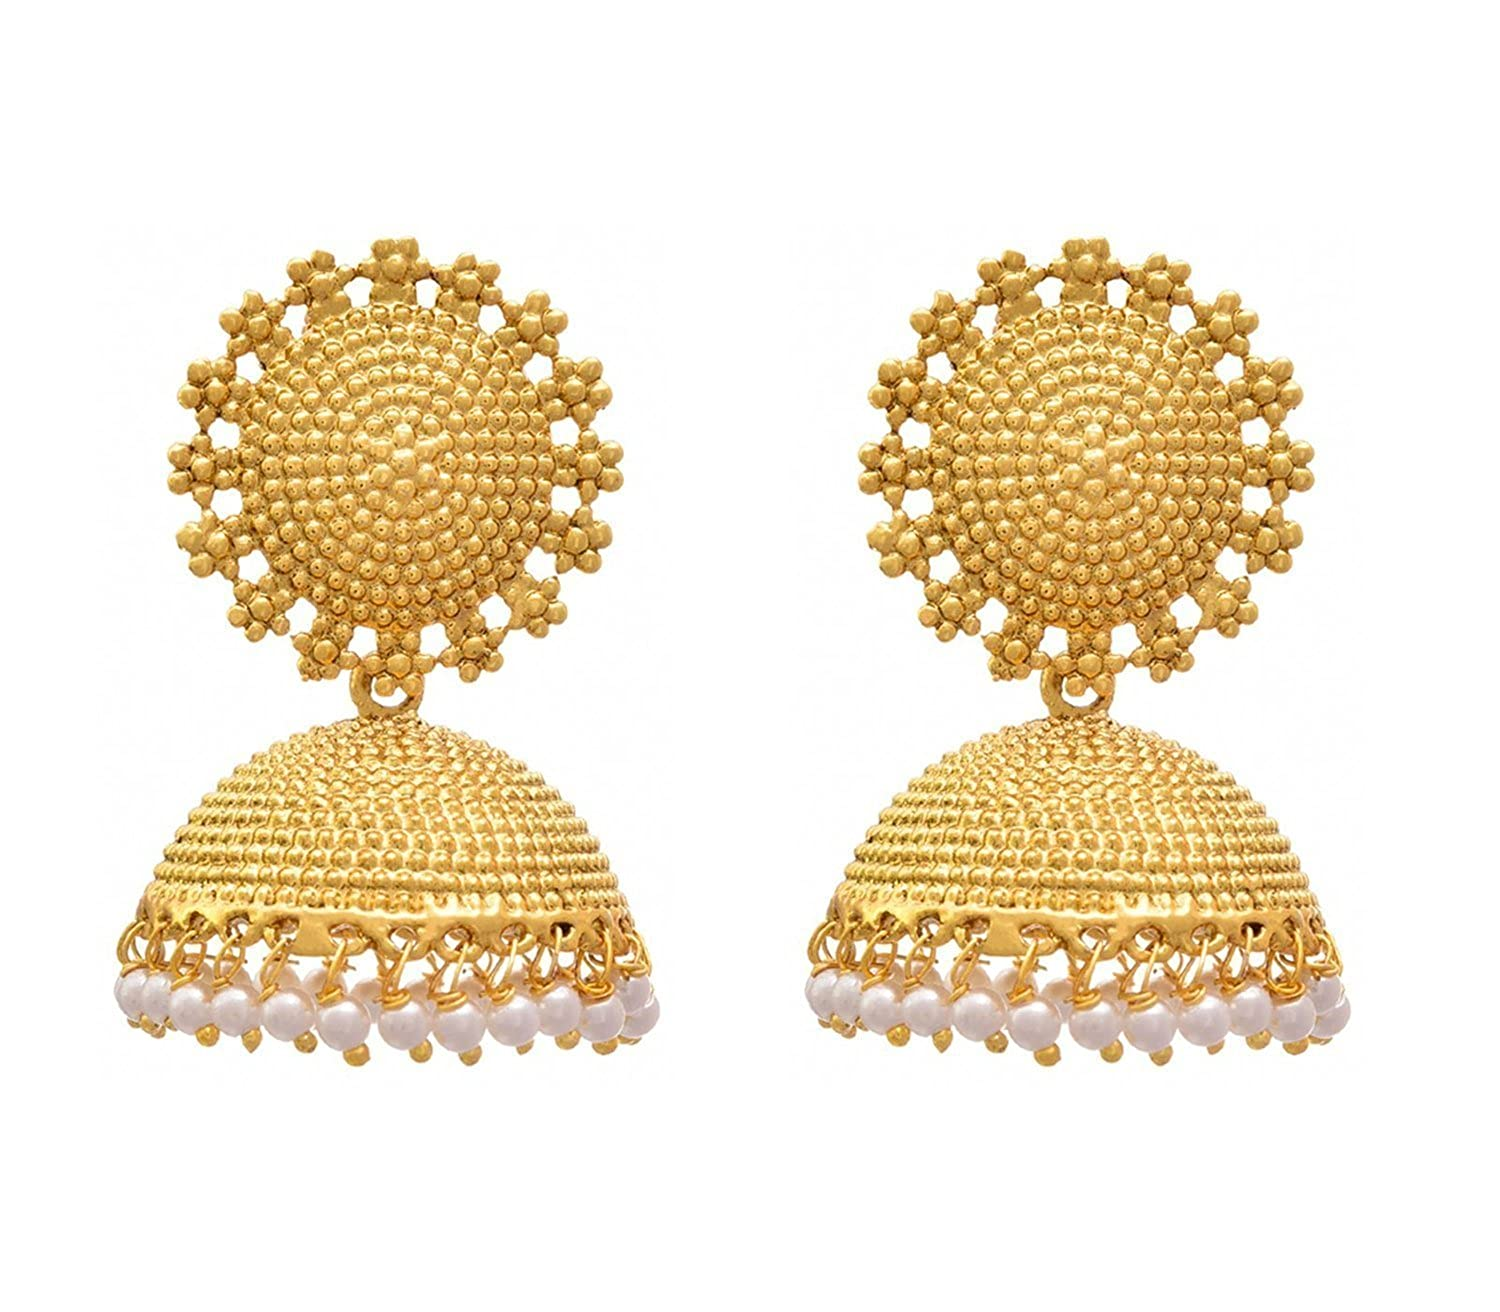 jewellery itm jhumka gold uk bollywood earrings s jhumki wear indian image earring polki is loading ethnic party